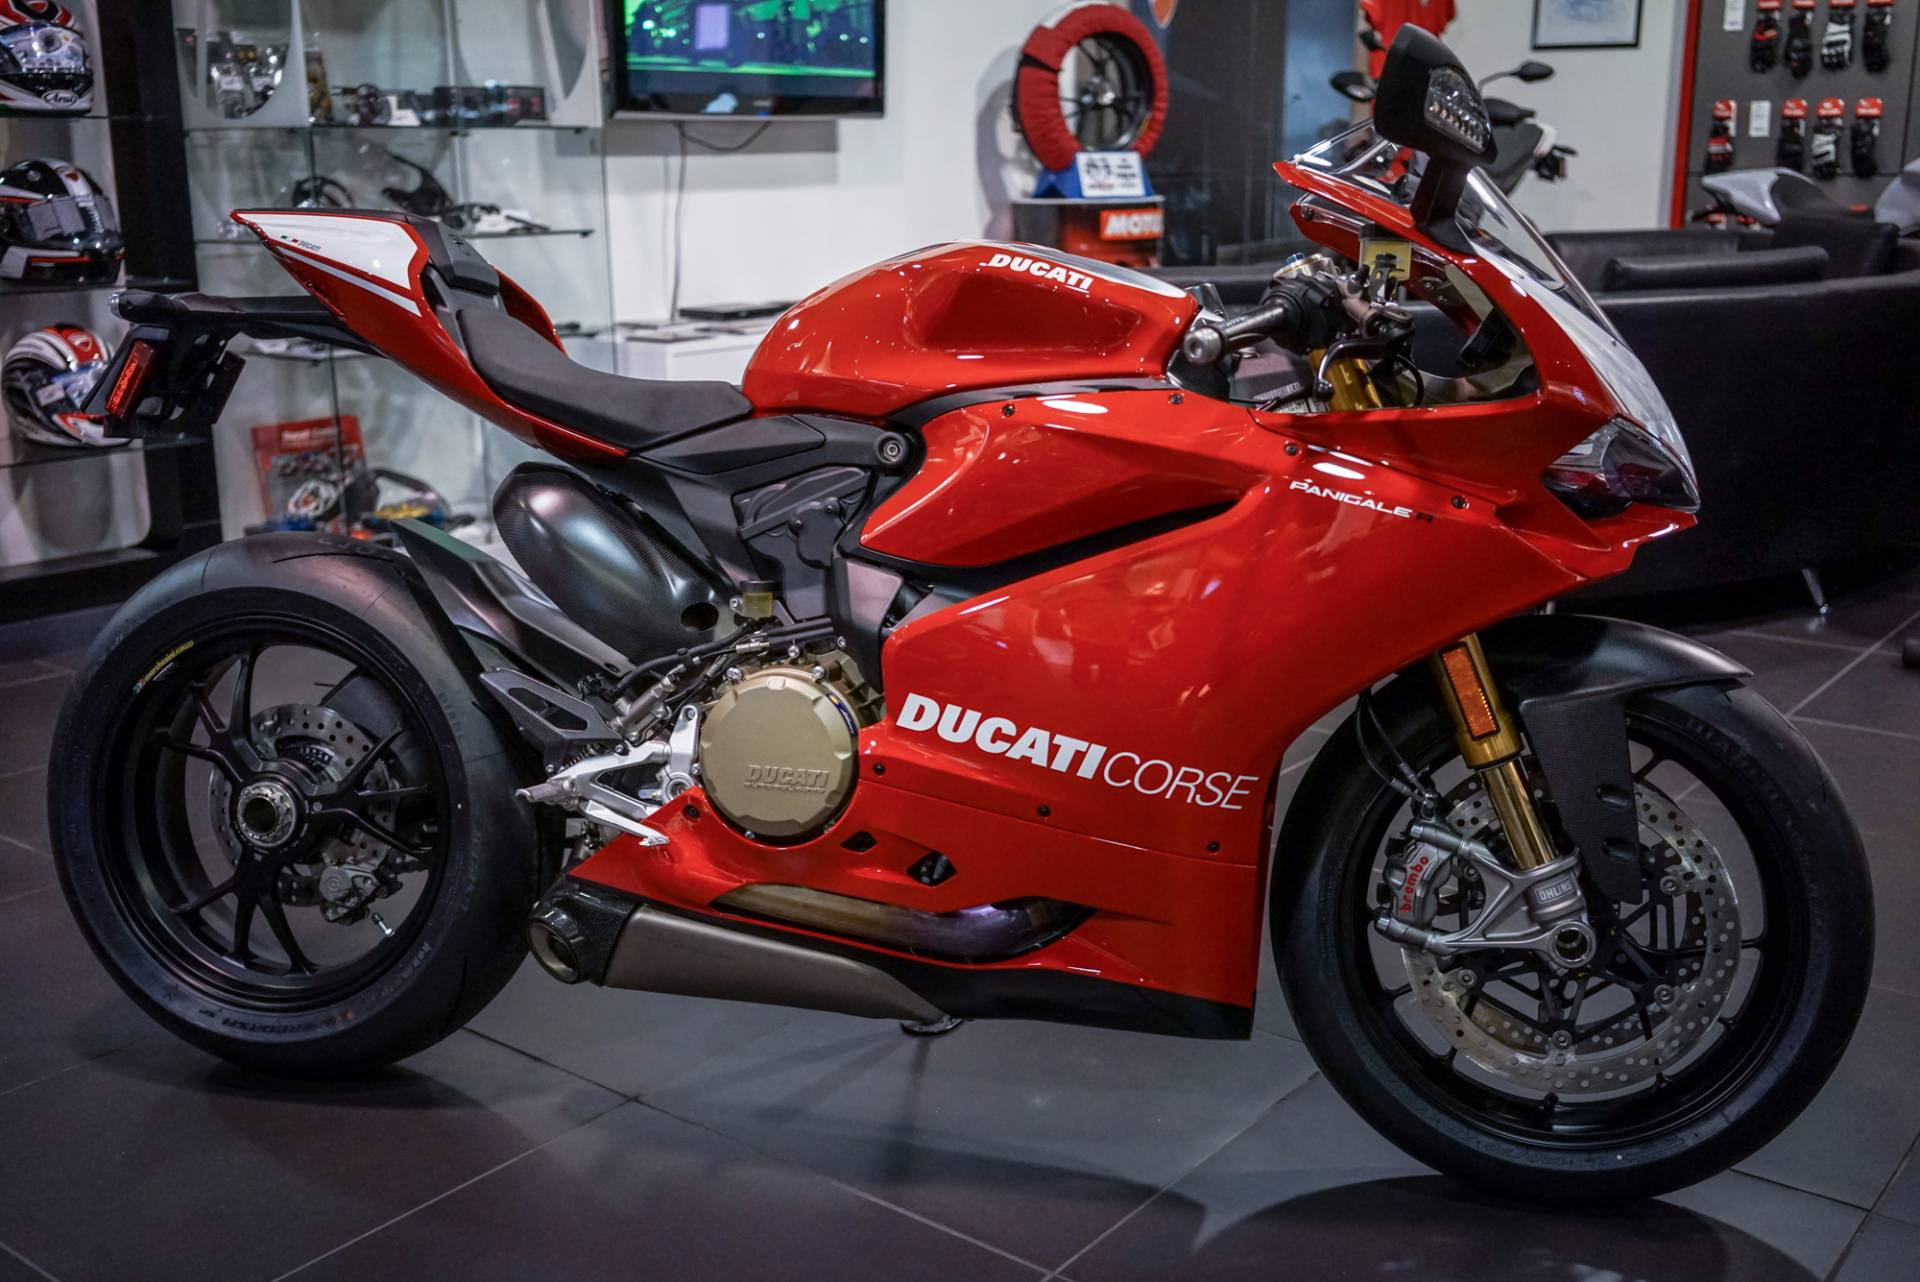 Born to race the new Panigale R brings a thrill to the track 205 hp react instantly to a twist